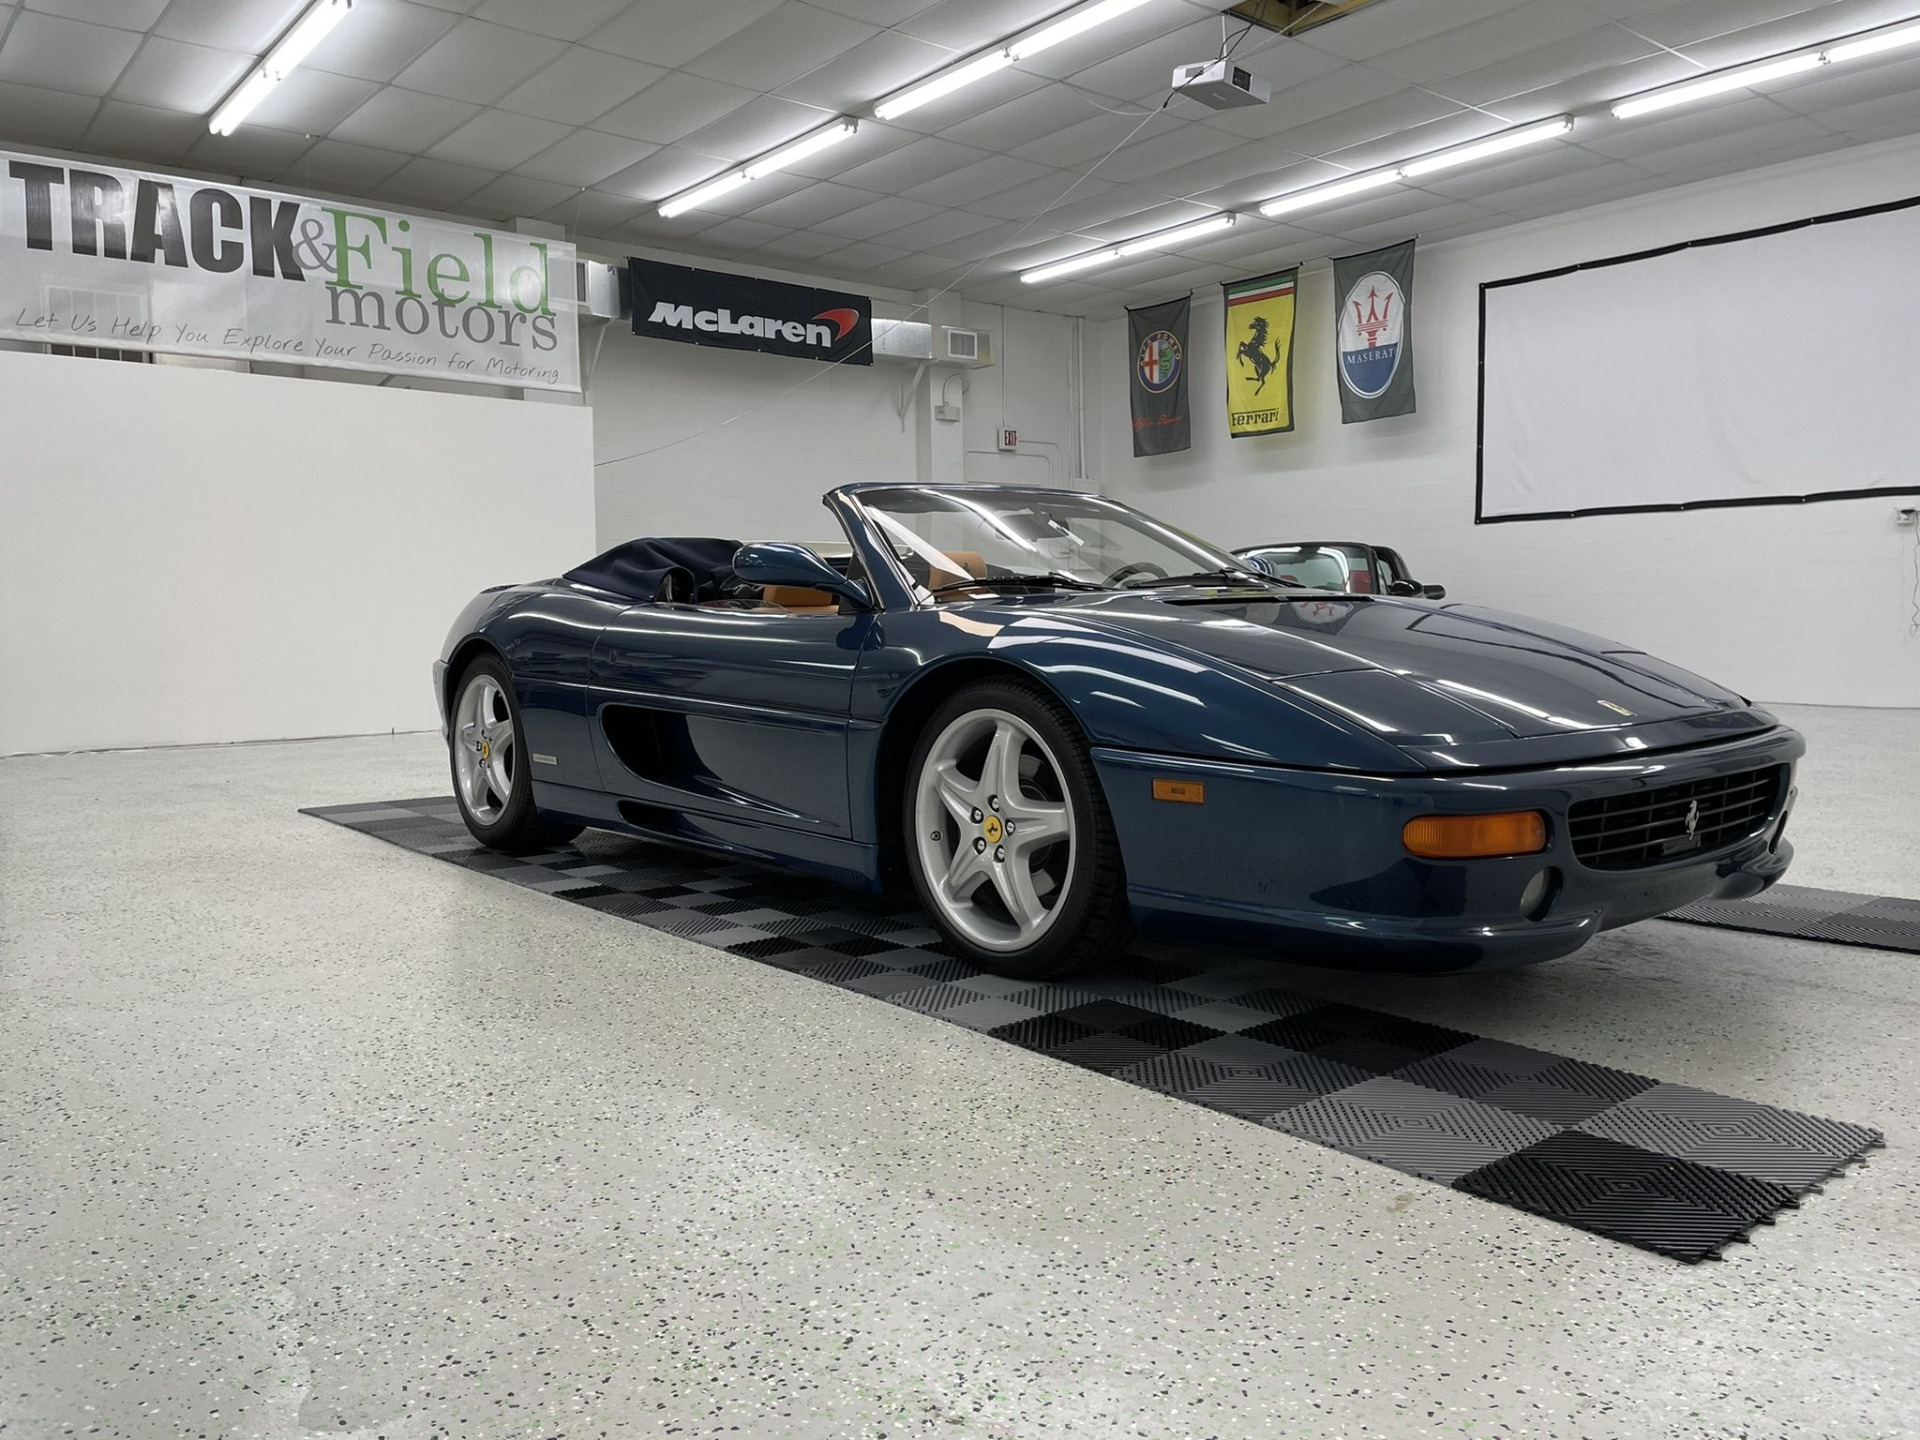 Used 1998 FERRARI 355 SPIDER for sale $89,997 at Track and Field Motors in Safety Harbor FL